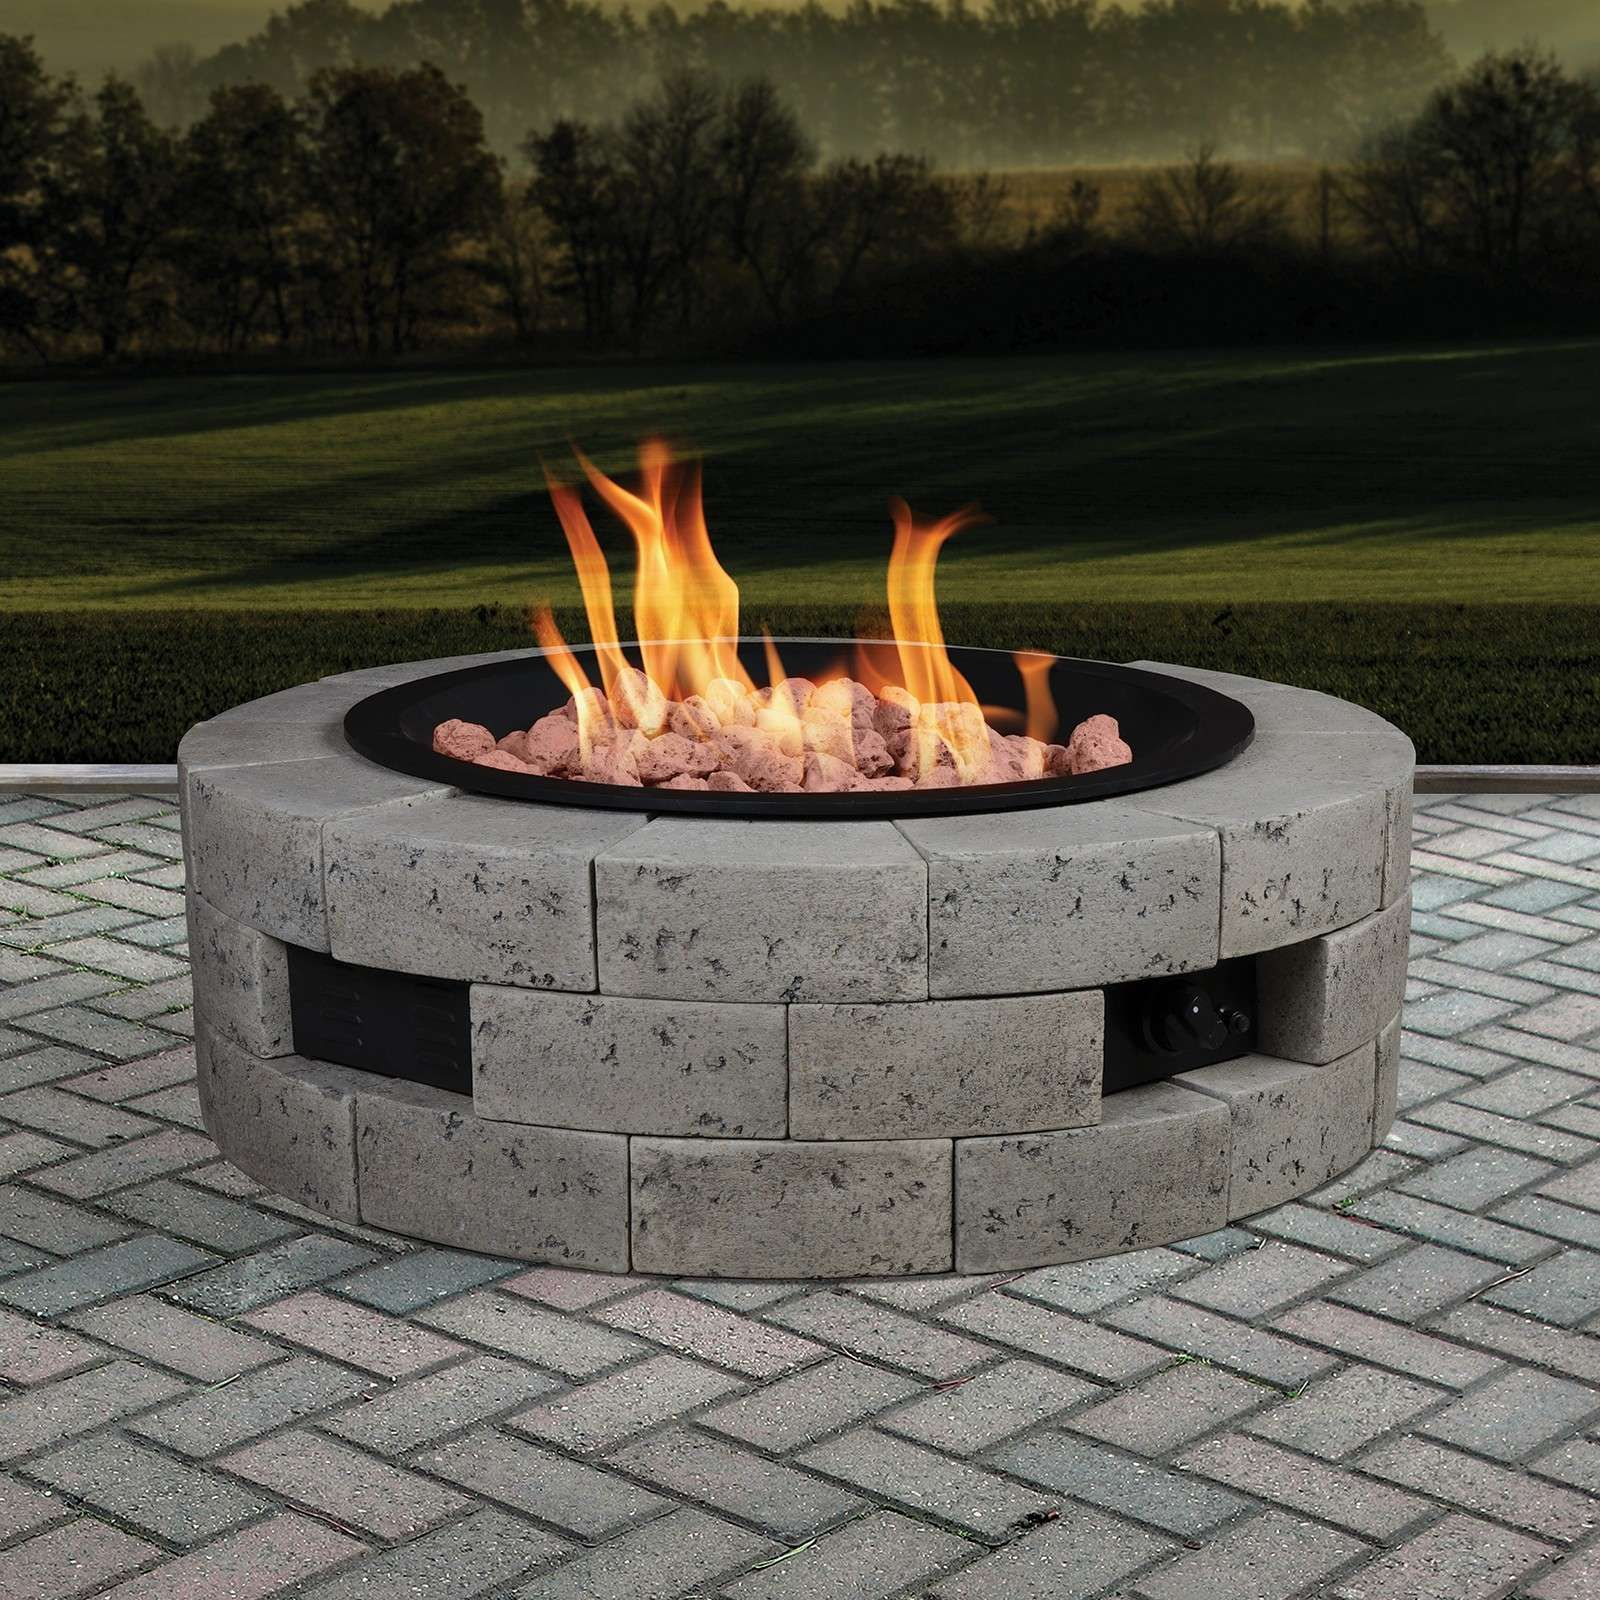 Lowest Price On Bond Manufacturing 35 Round Gas Fire Table 66926 Shop Today Natural Gas Fire Pit Cinder Block Fire Pit Outside Fire Pits